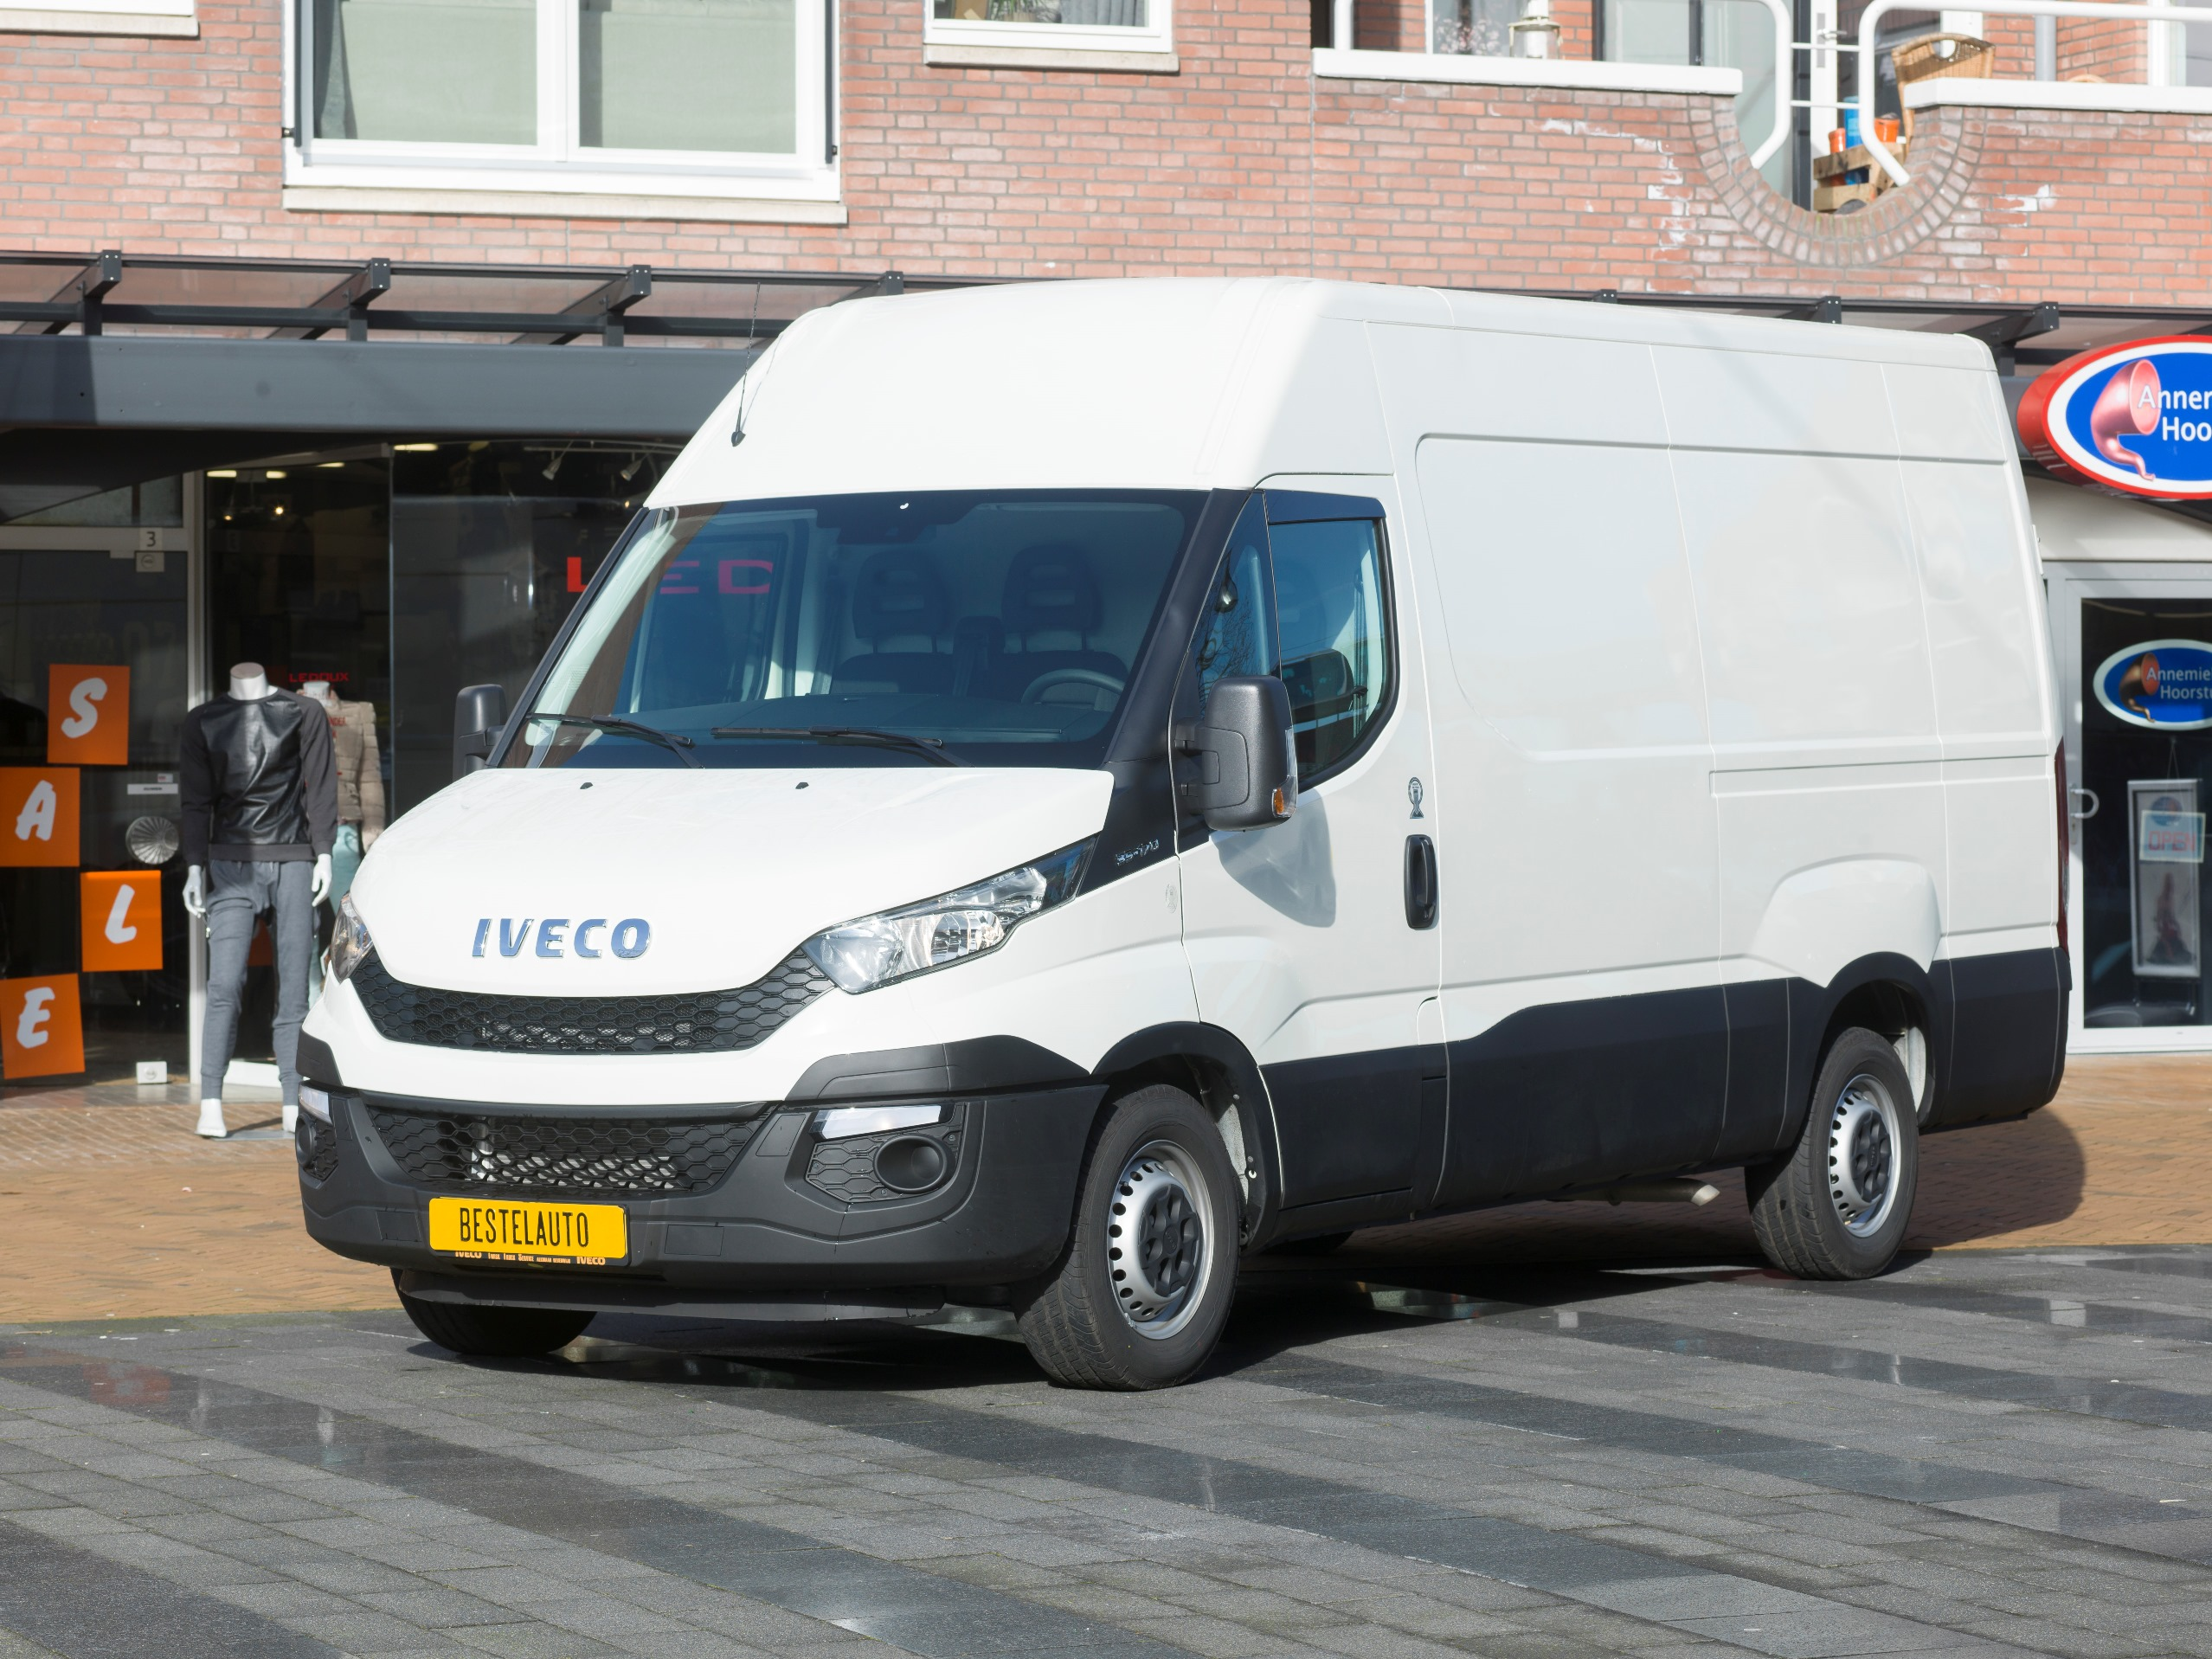 Iveco Daily 35S17 HiMatic • Bestelautonl